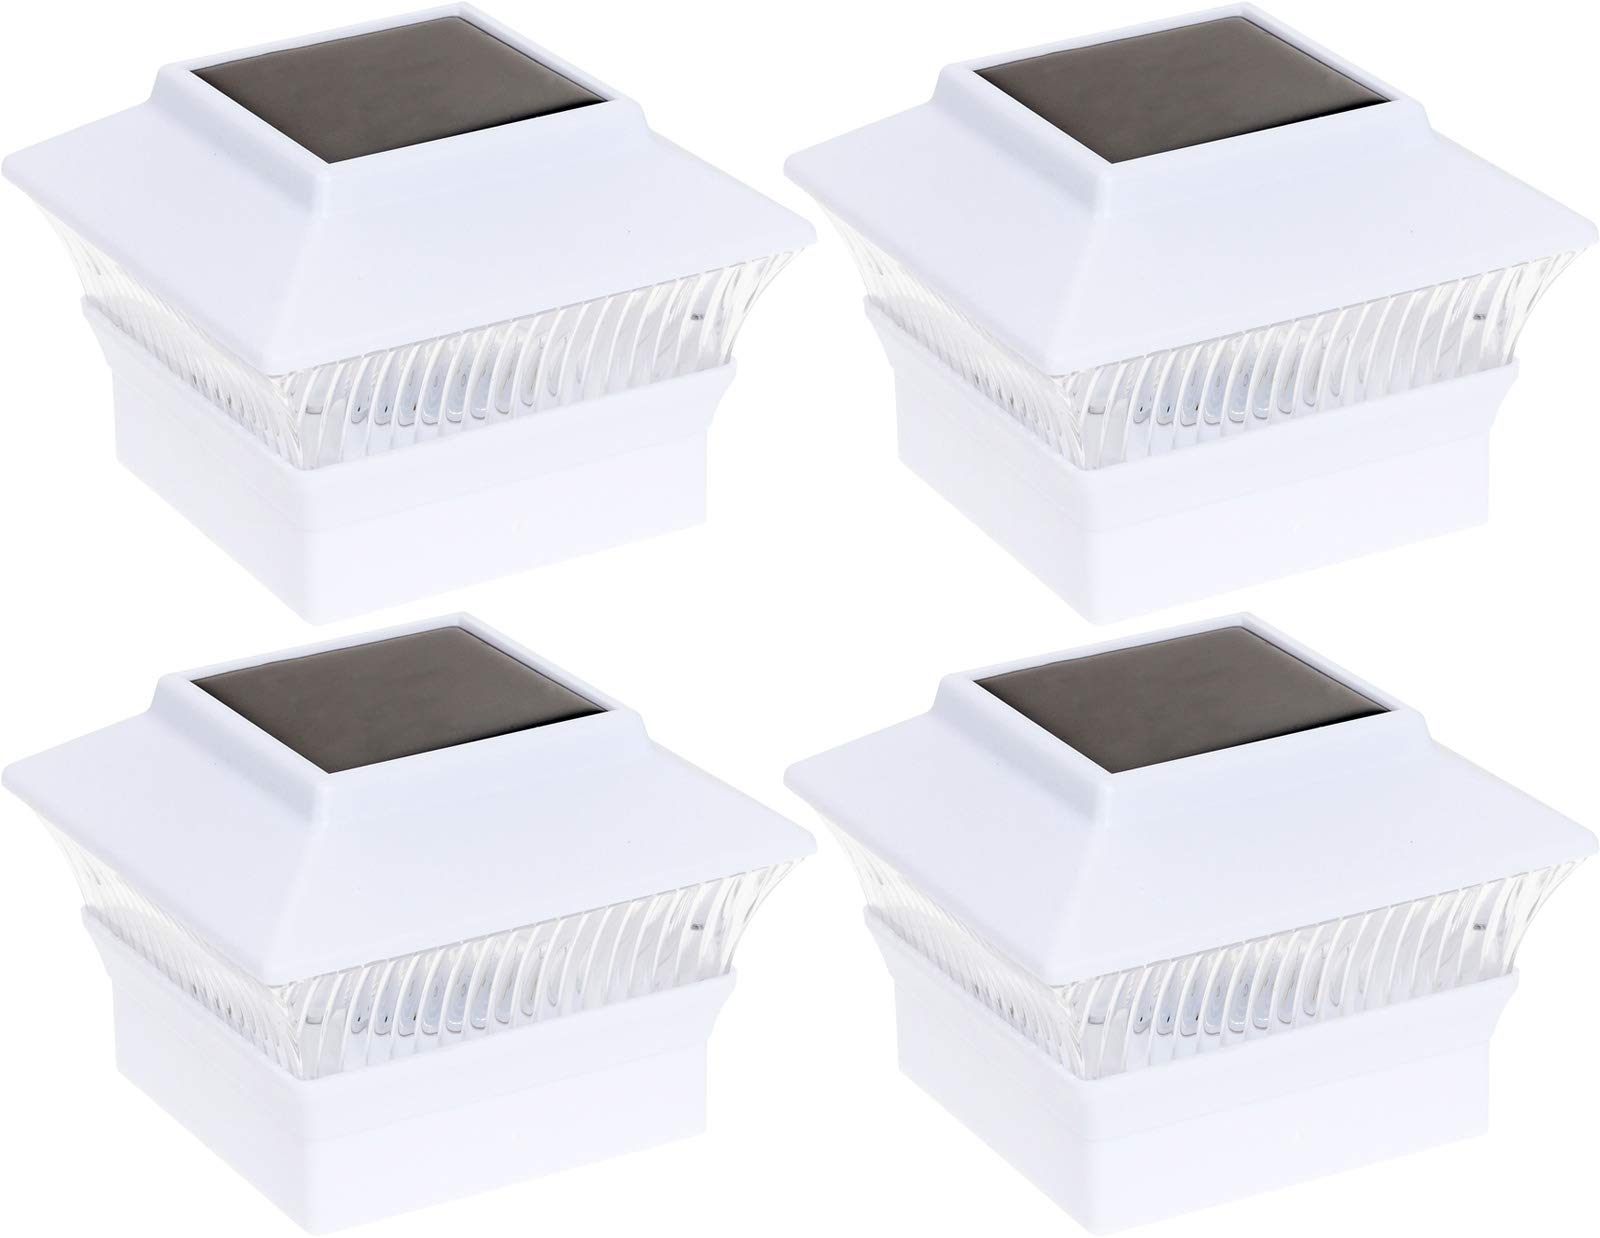 GreenLighting 4 Pack Solar Power Square Outdoor Post Cap Lights for 4x4 PVC Posts (White) by GreenLighting